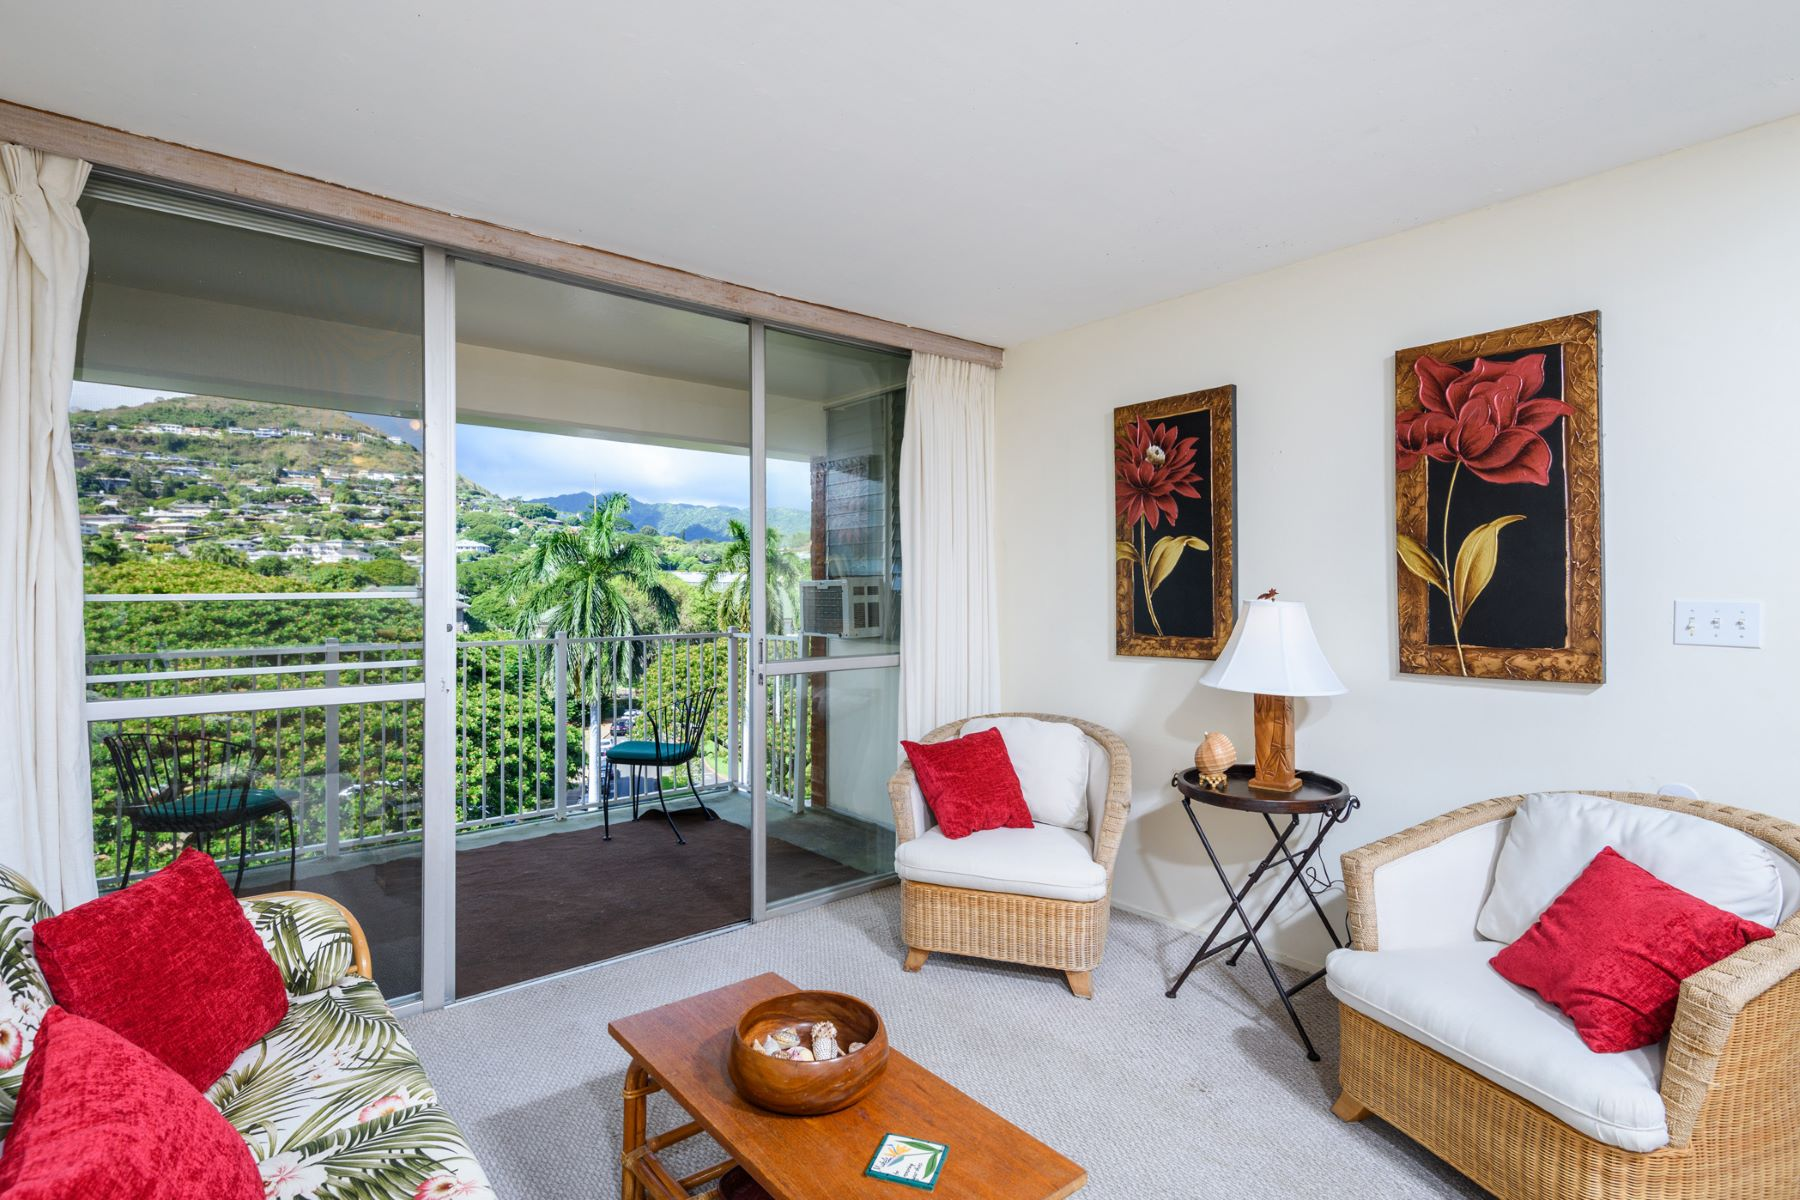 Additional photo for property listing at Tropical Island Home 1535 Punahou Street #703 Honolulu, Hawaii 96822 United States